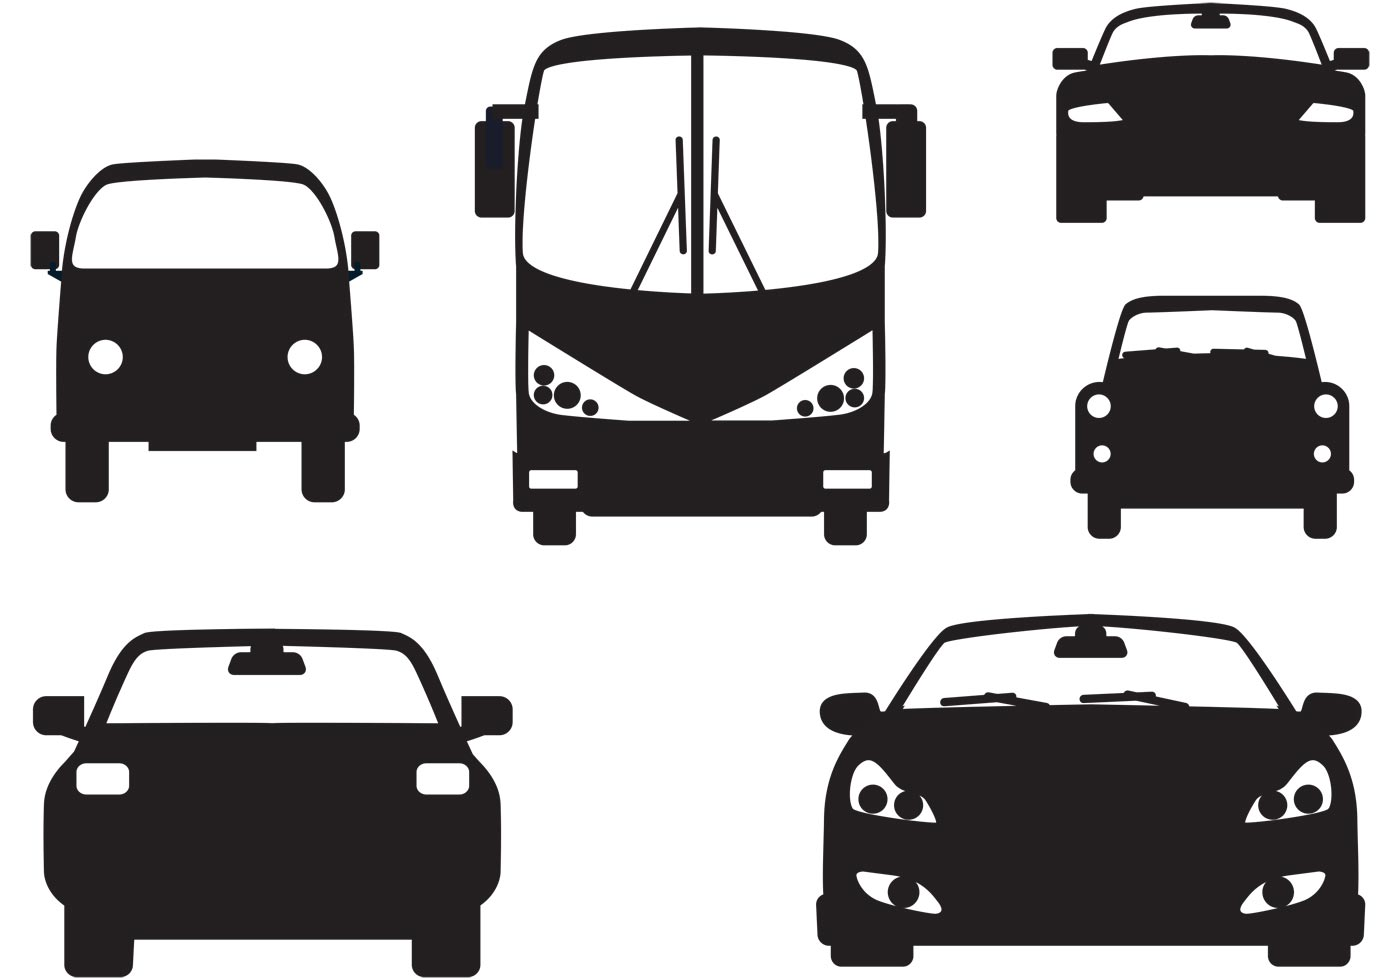 car fronts view download free vector art stock